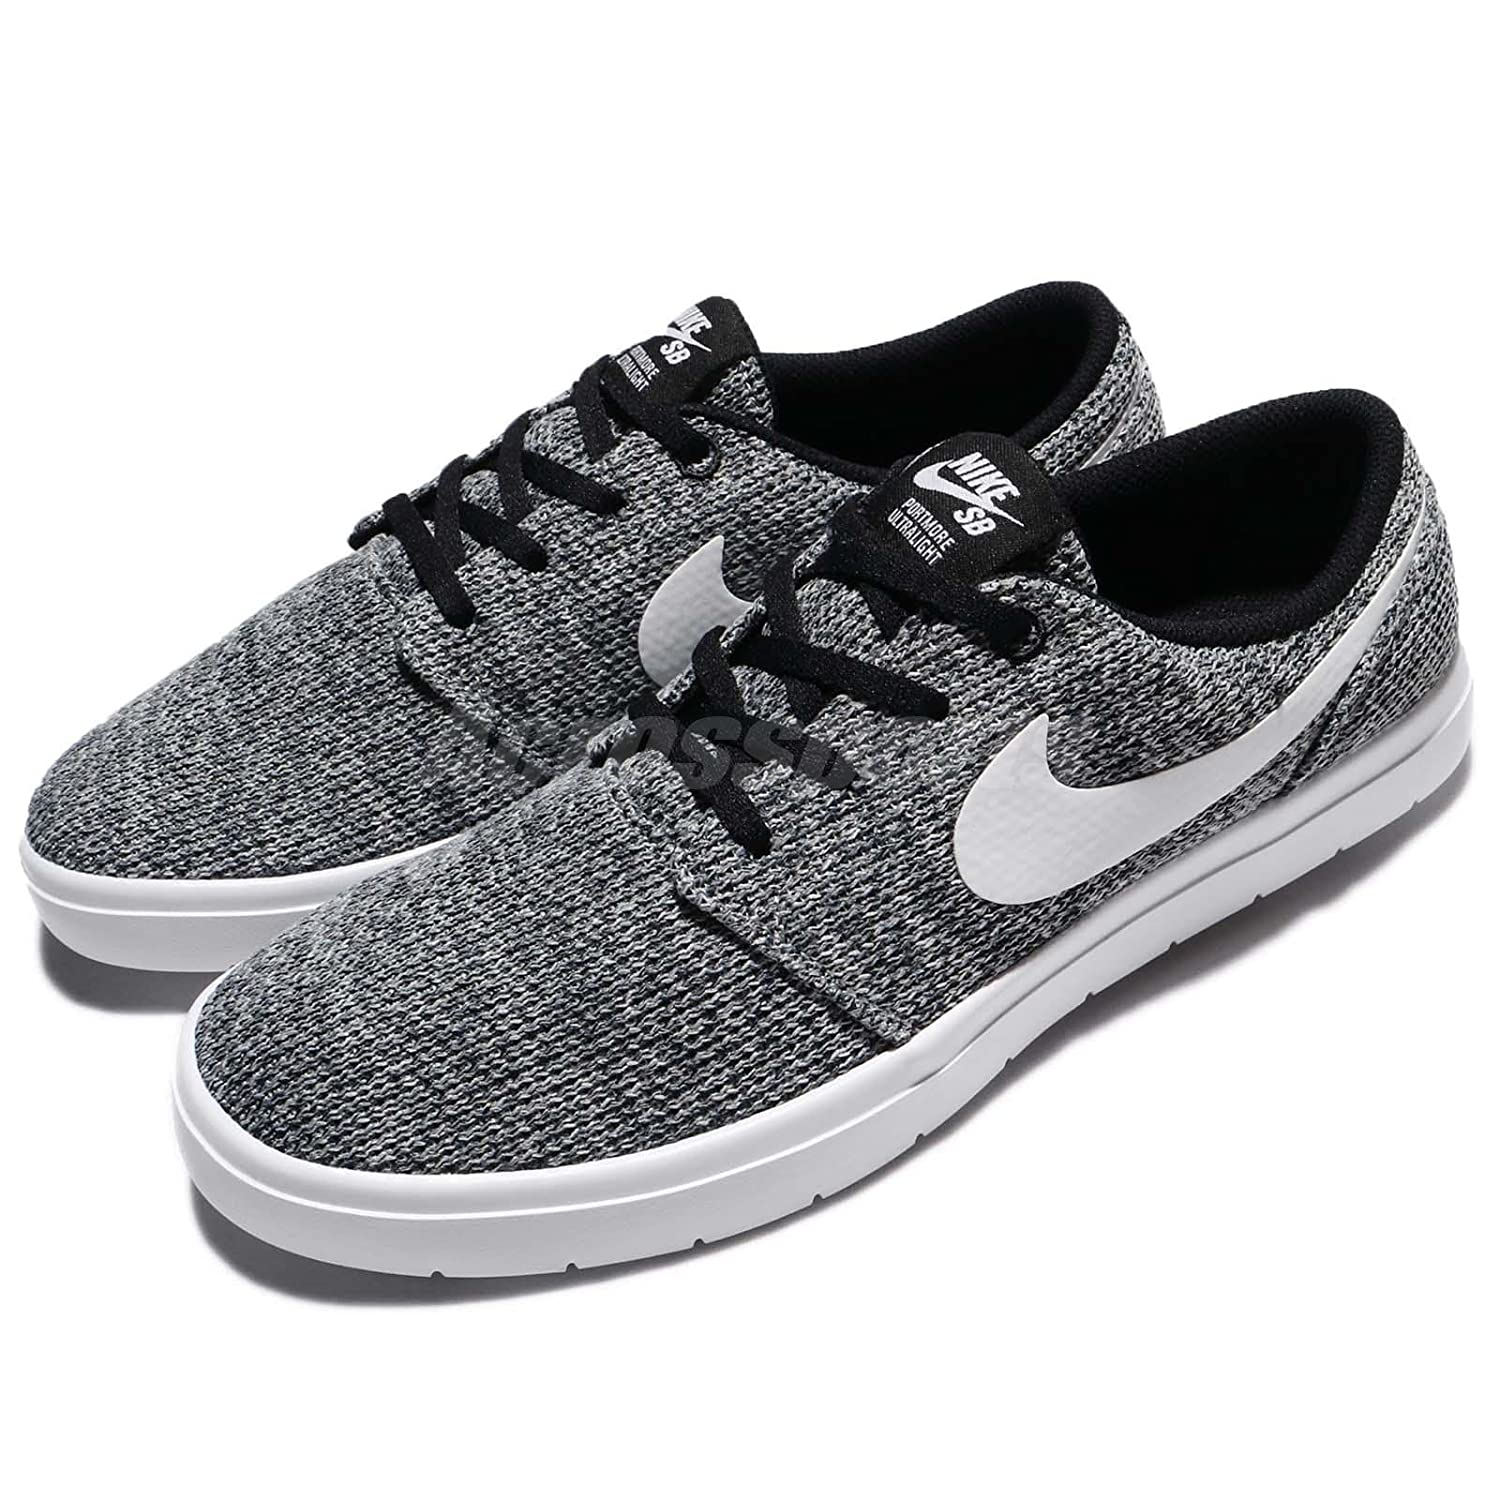 huge discount c9883 a5b00 NIKE SB PORTMORE II ULTRALIGHT SKATE MEN SHOES WOLF GREY 880271-012 SZ 10.5  NEW  Amazon.ca  Sports   Outdoors